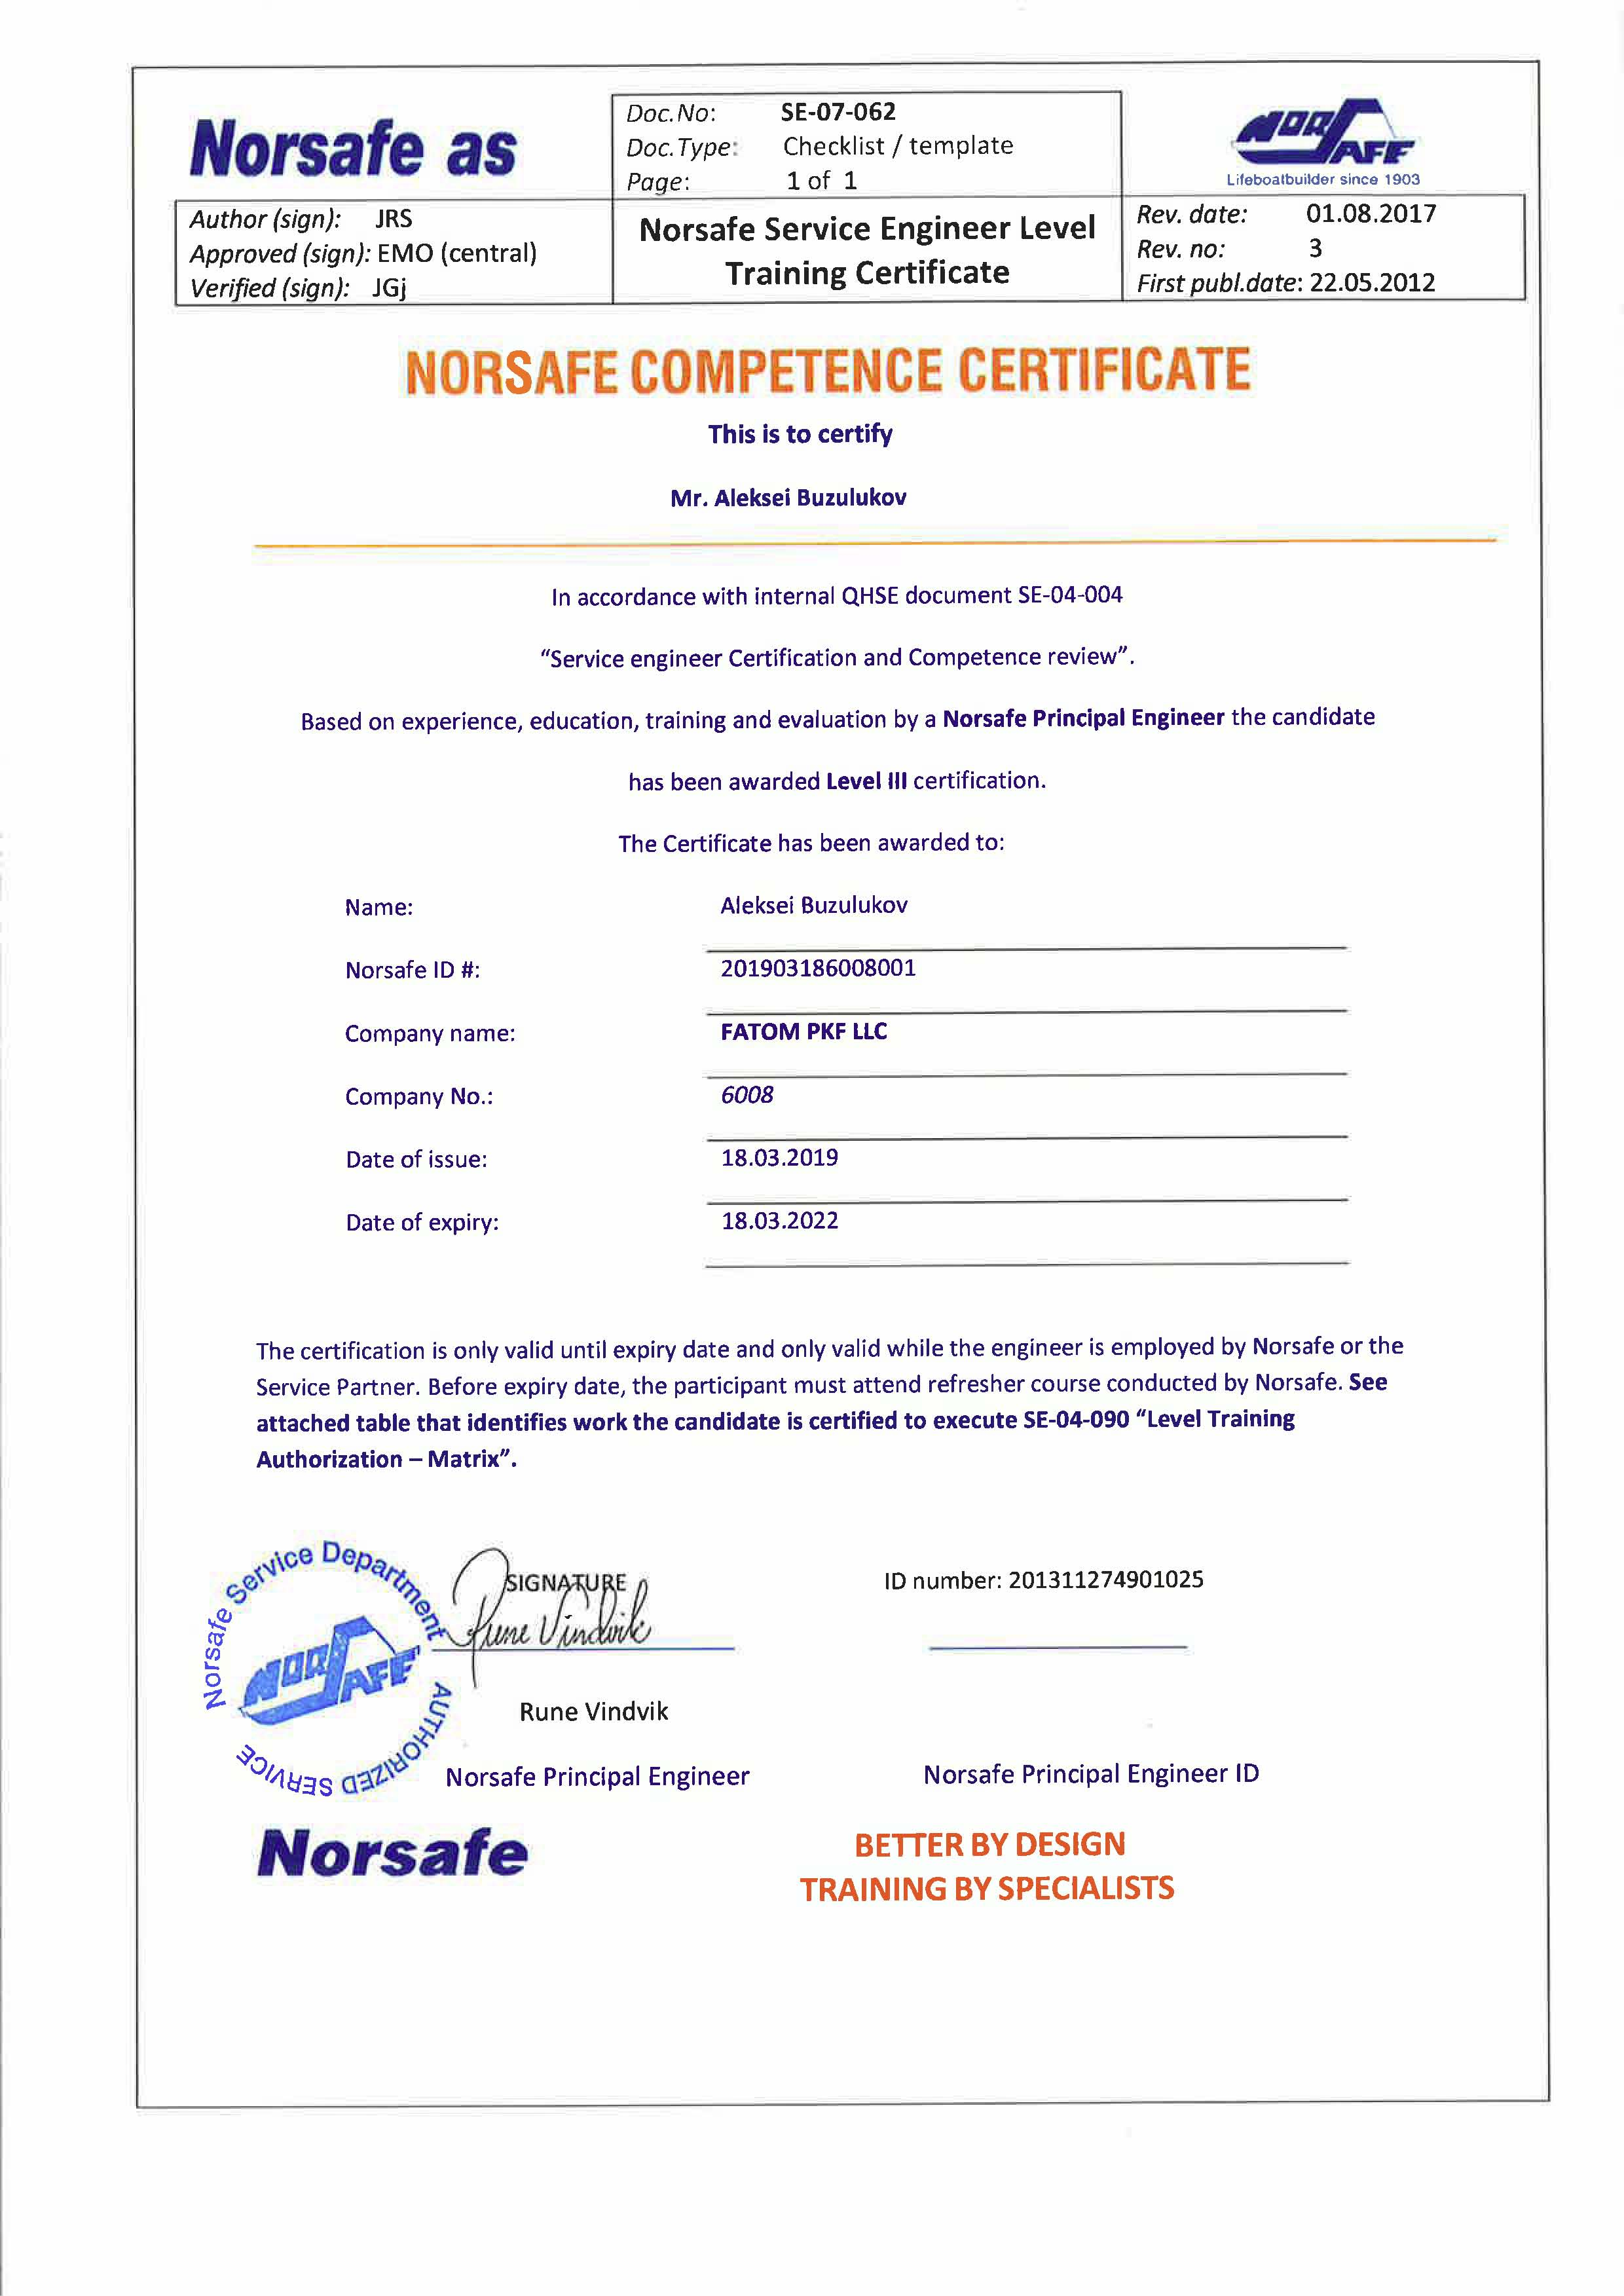 Norsafe Competence Certificate